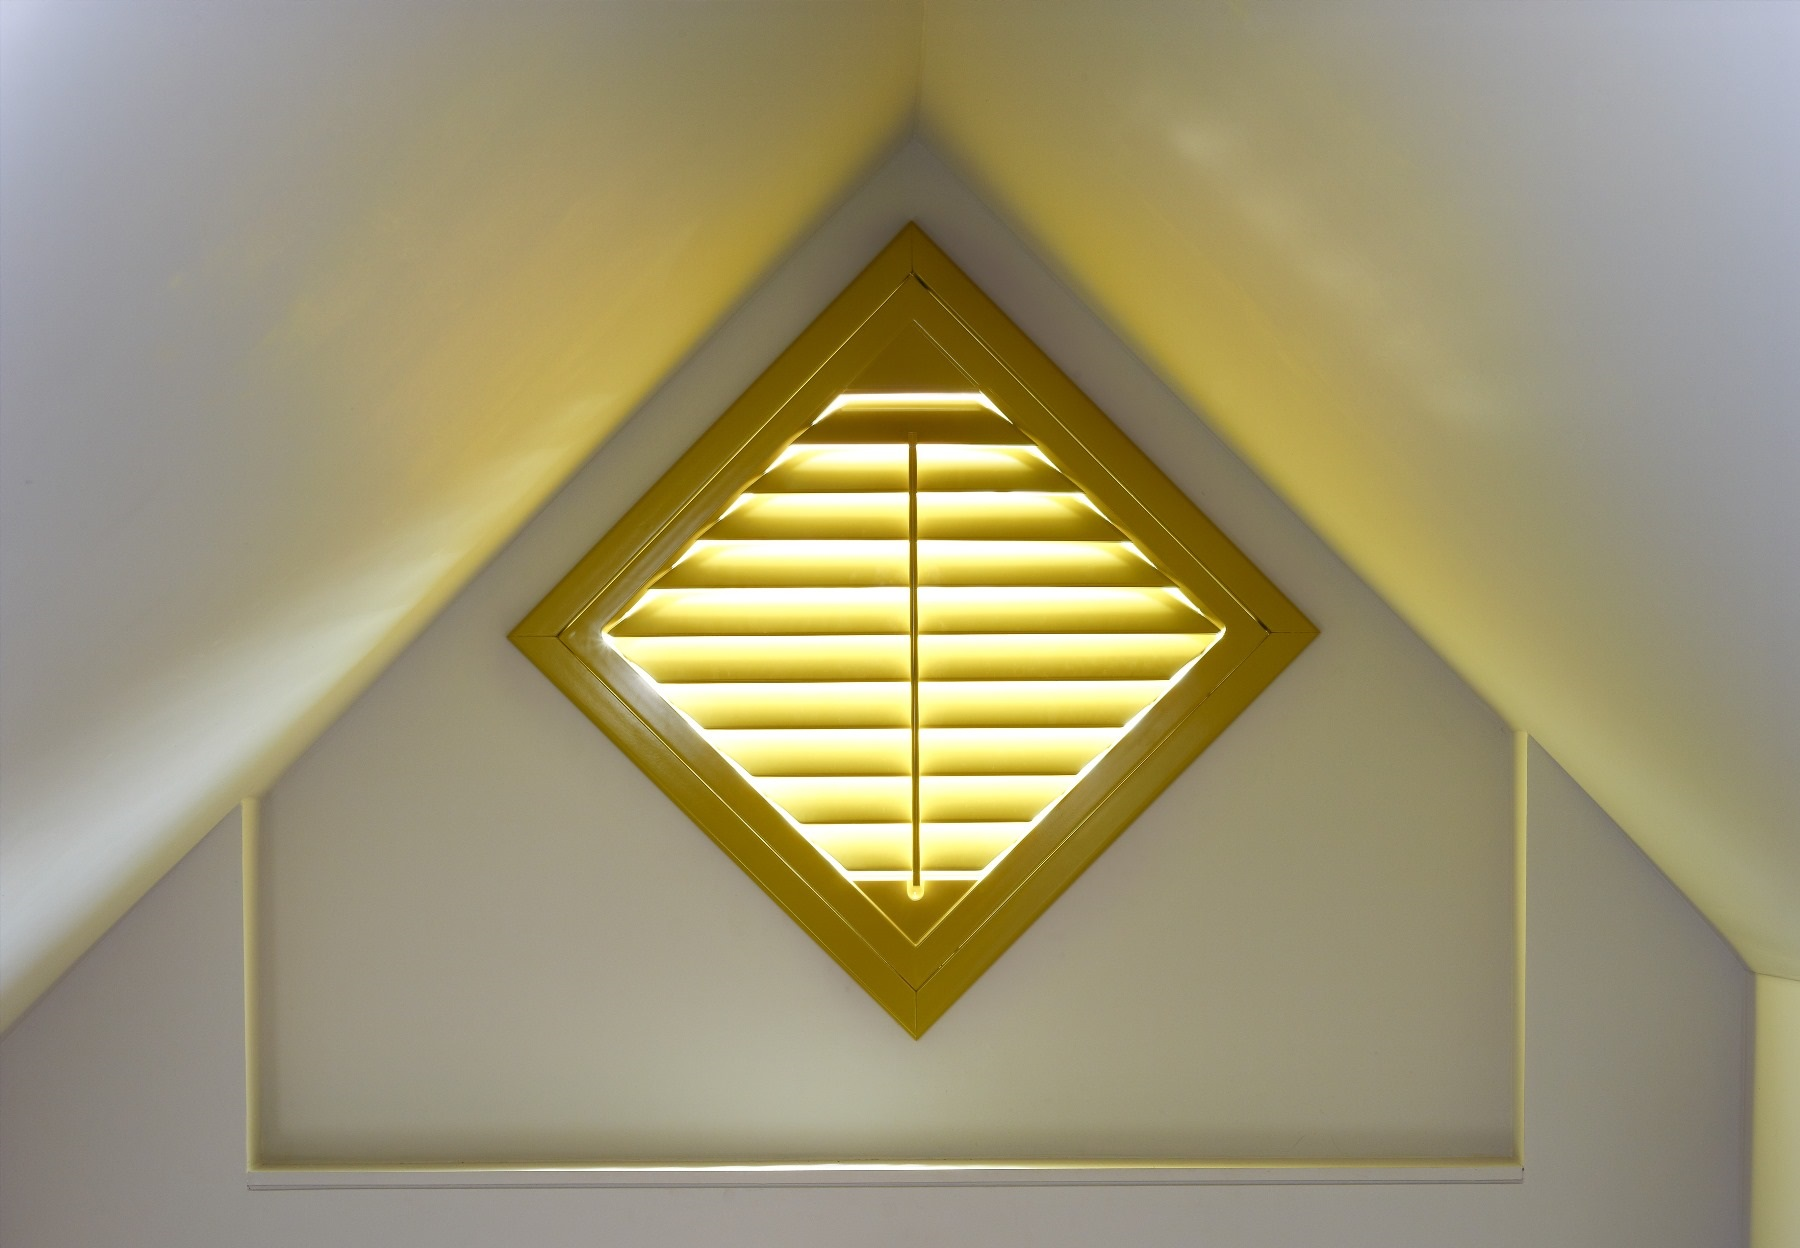 Can Shutters Fit all Window Types?